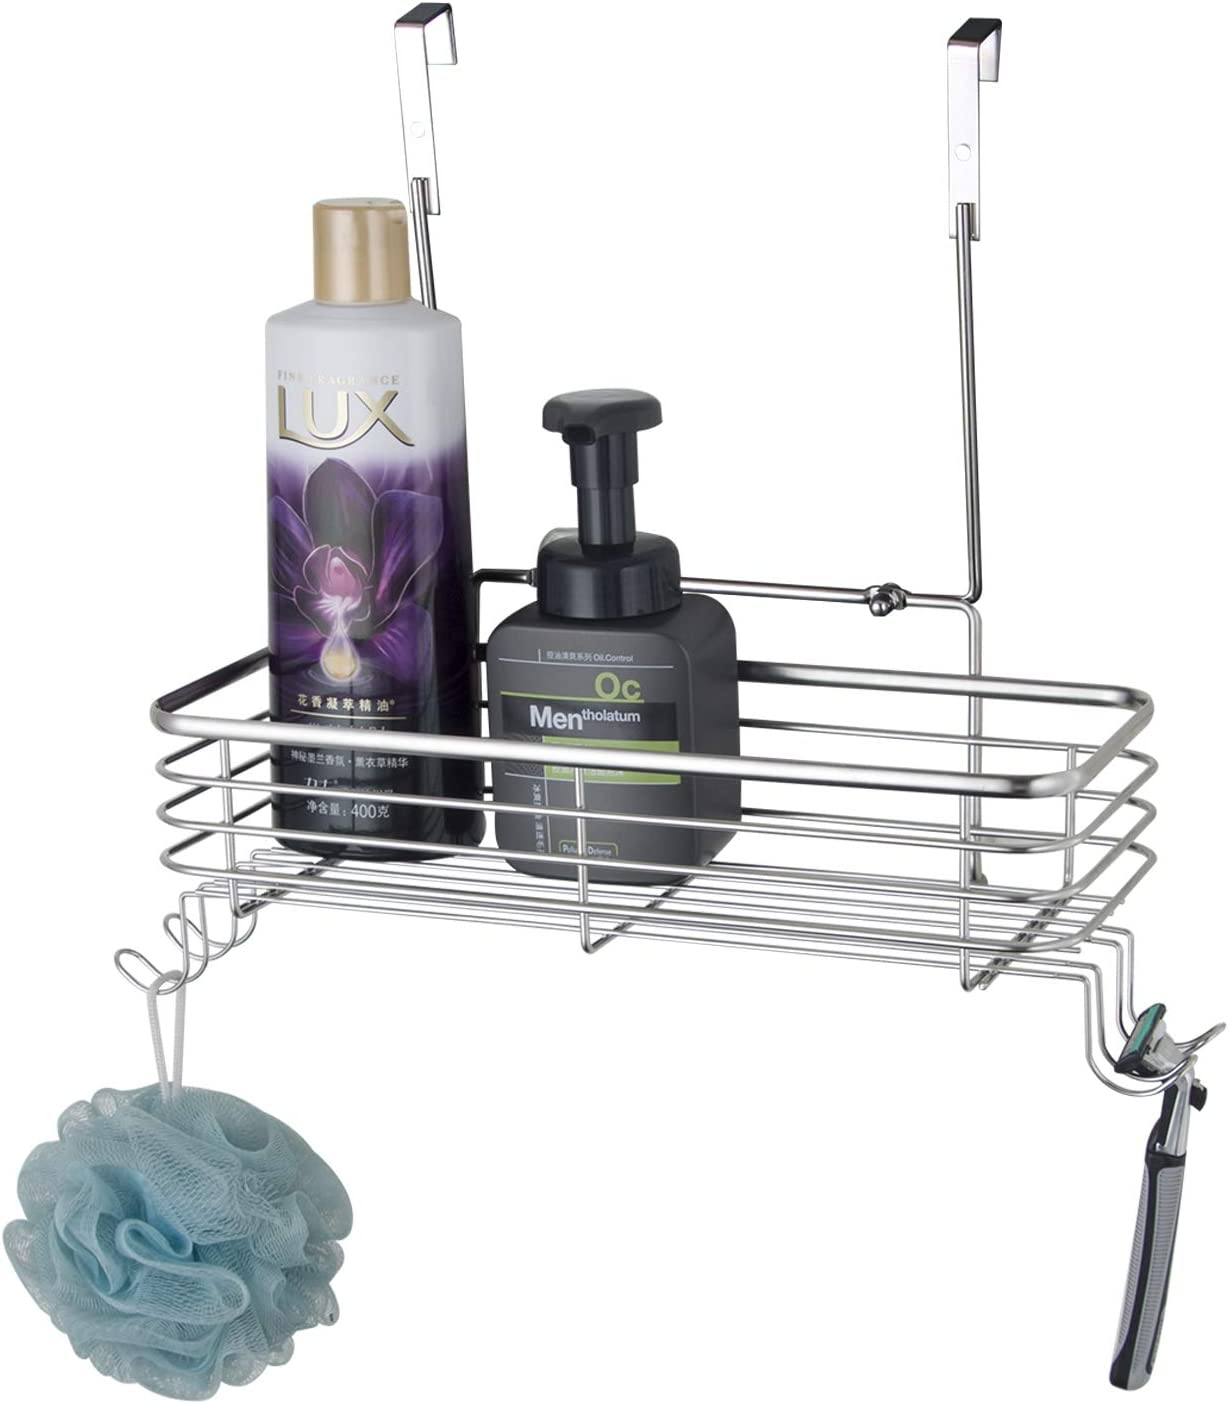 LeHeJu Lowest price challenge Hanging Shower Max 49% OFF Caddy Stainless steel S304 Shampoo Cond